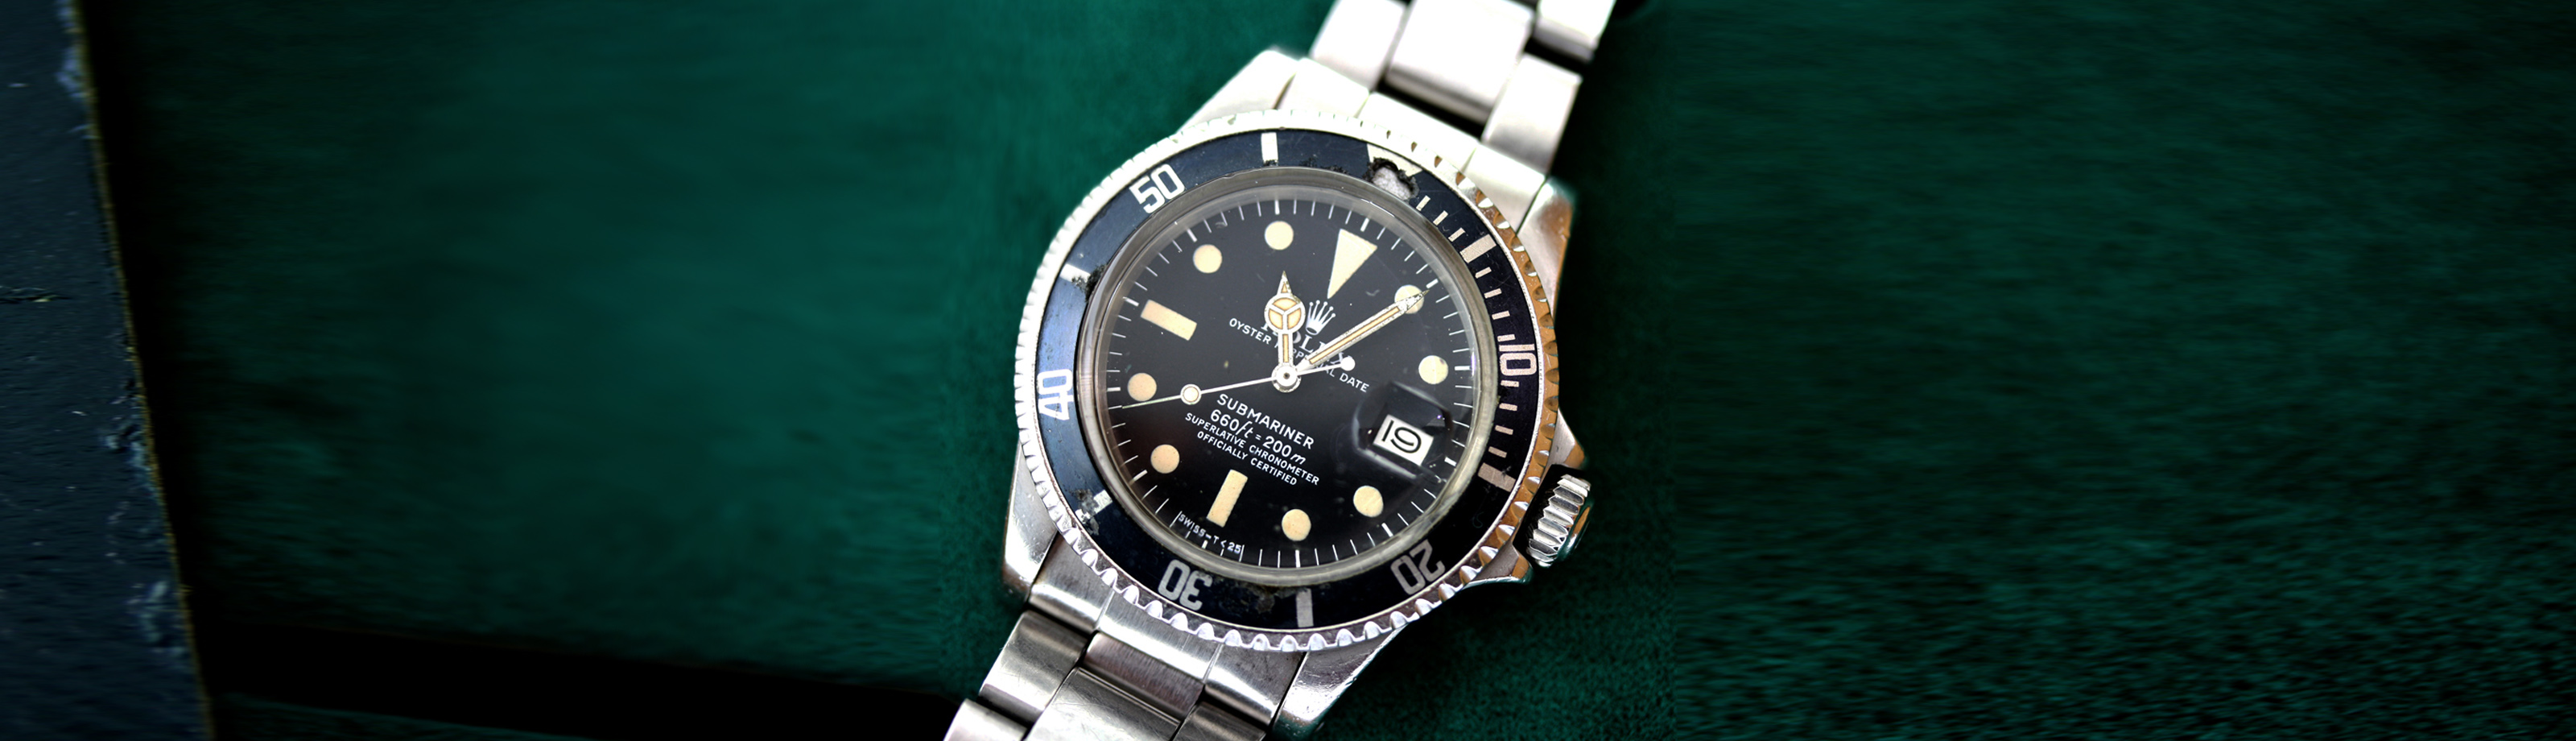 AN ORIGINAL NAVY DIVER'S ROLEX SUBMARINER FROM 1976 - MARCH 2021 NEWS article hero image